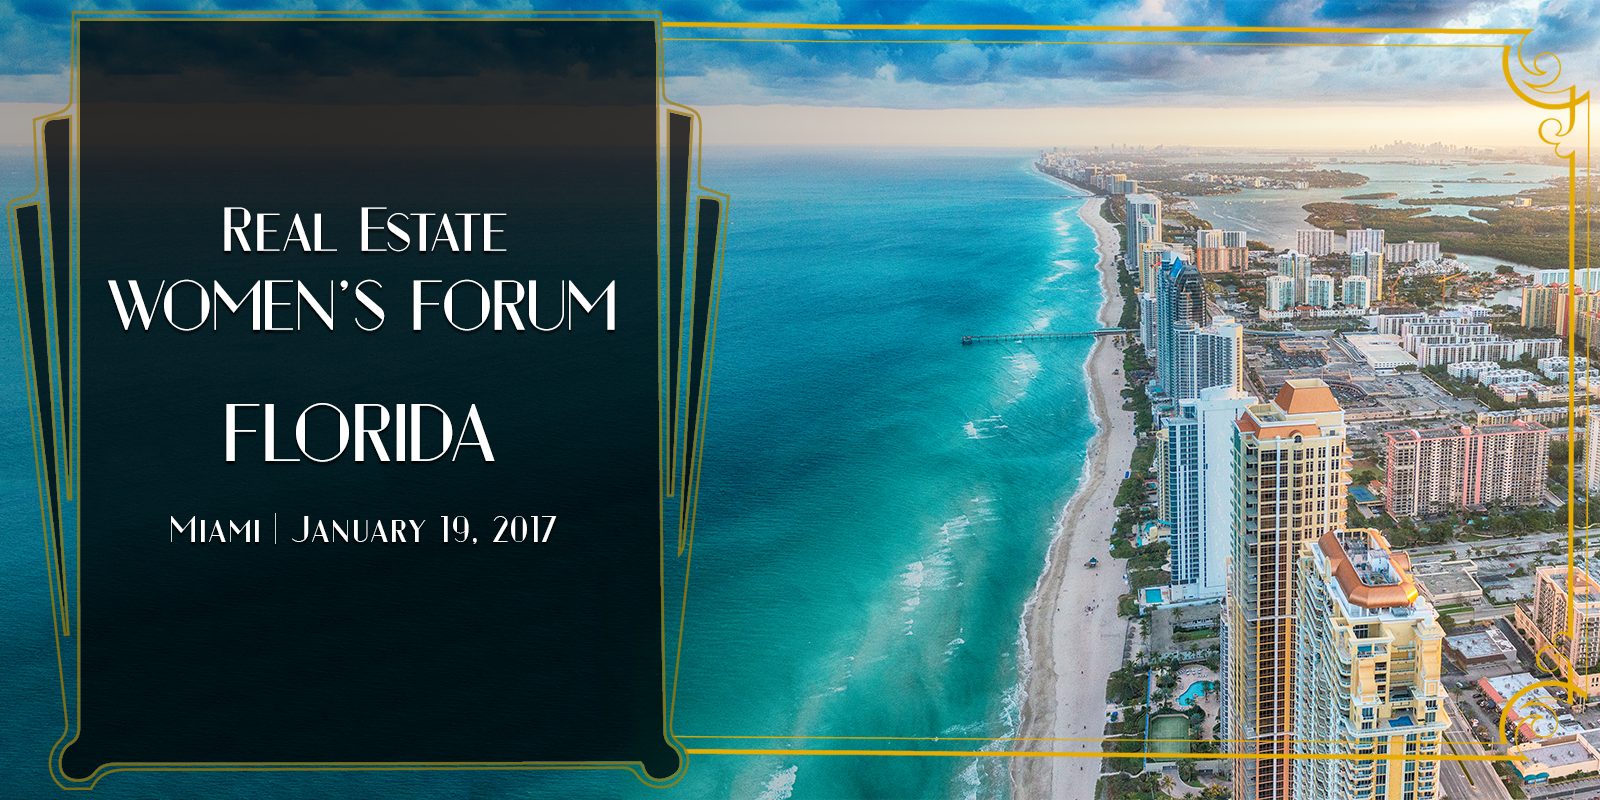 Real Estate Women's Forum Florida